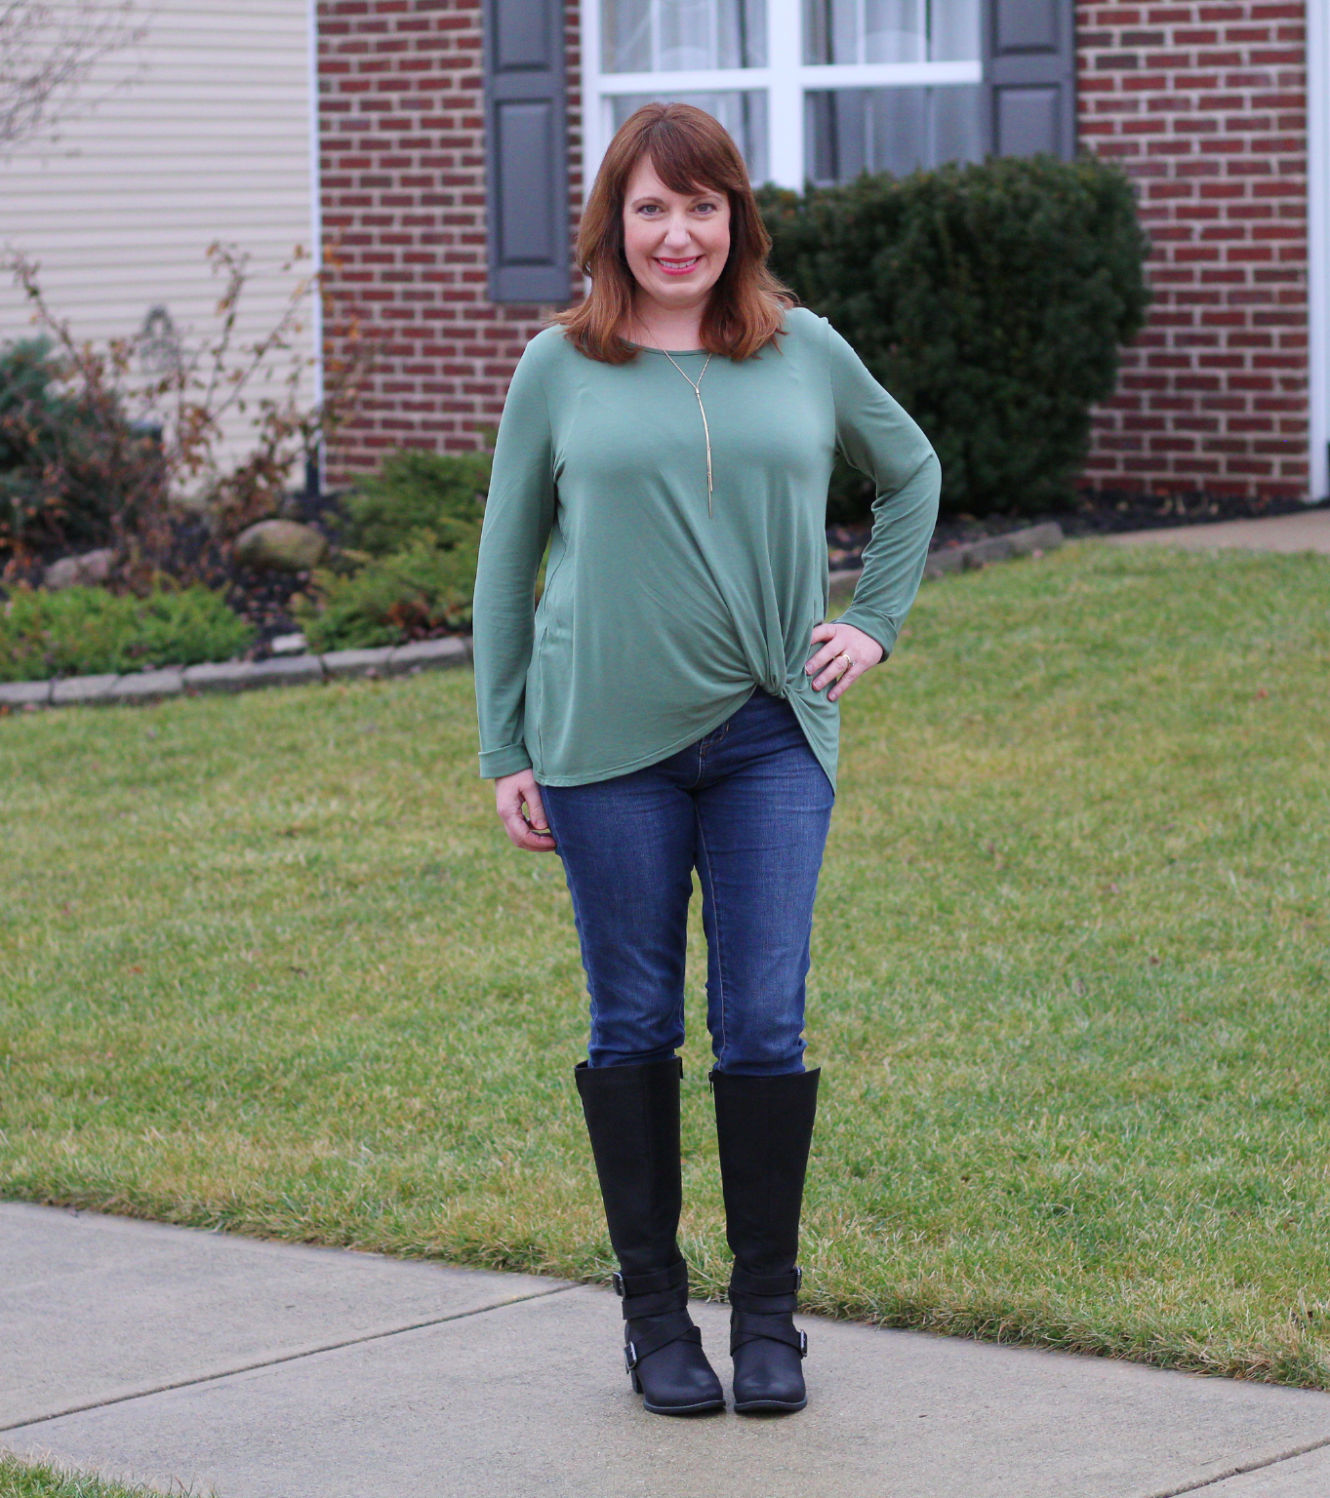 Green Twist Top / Dressed In Faith / Over40Fashion